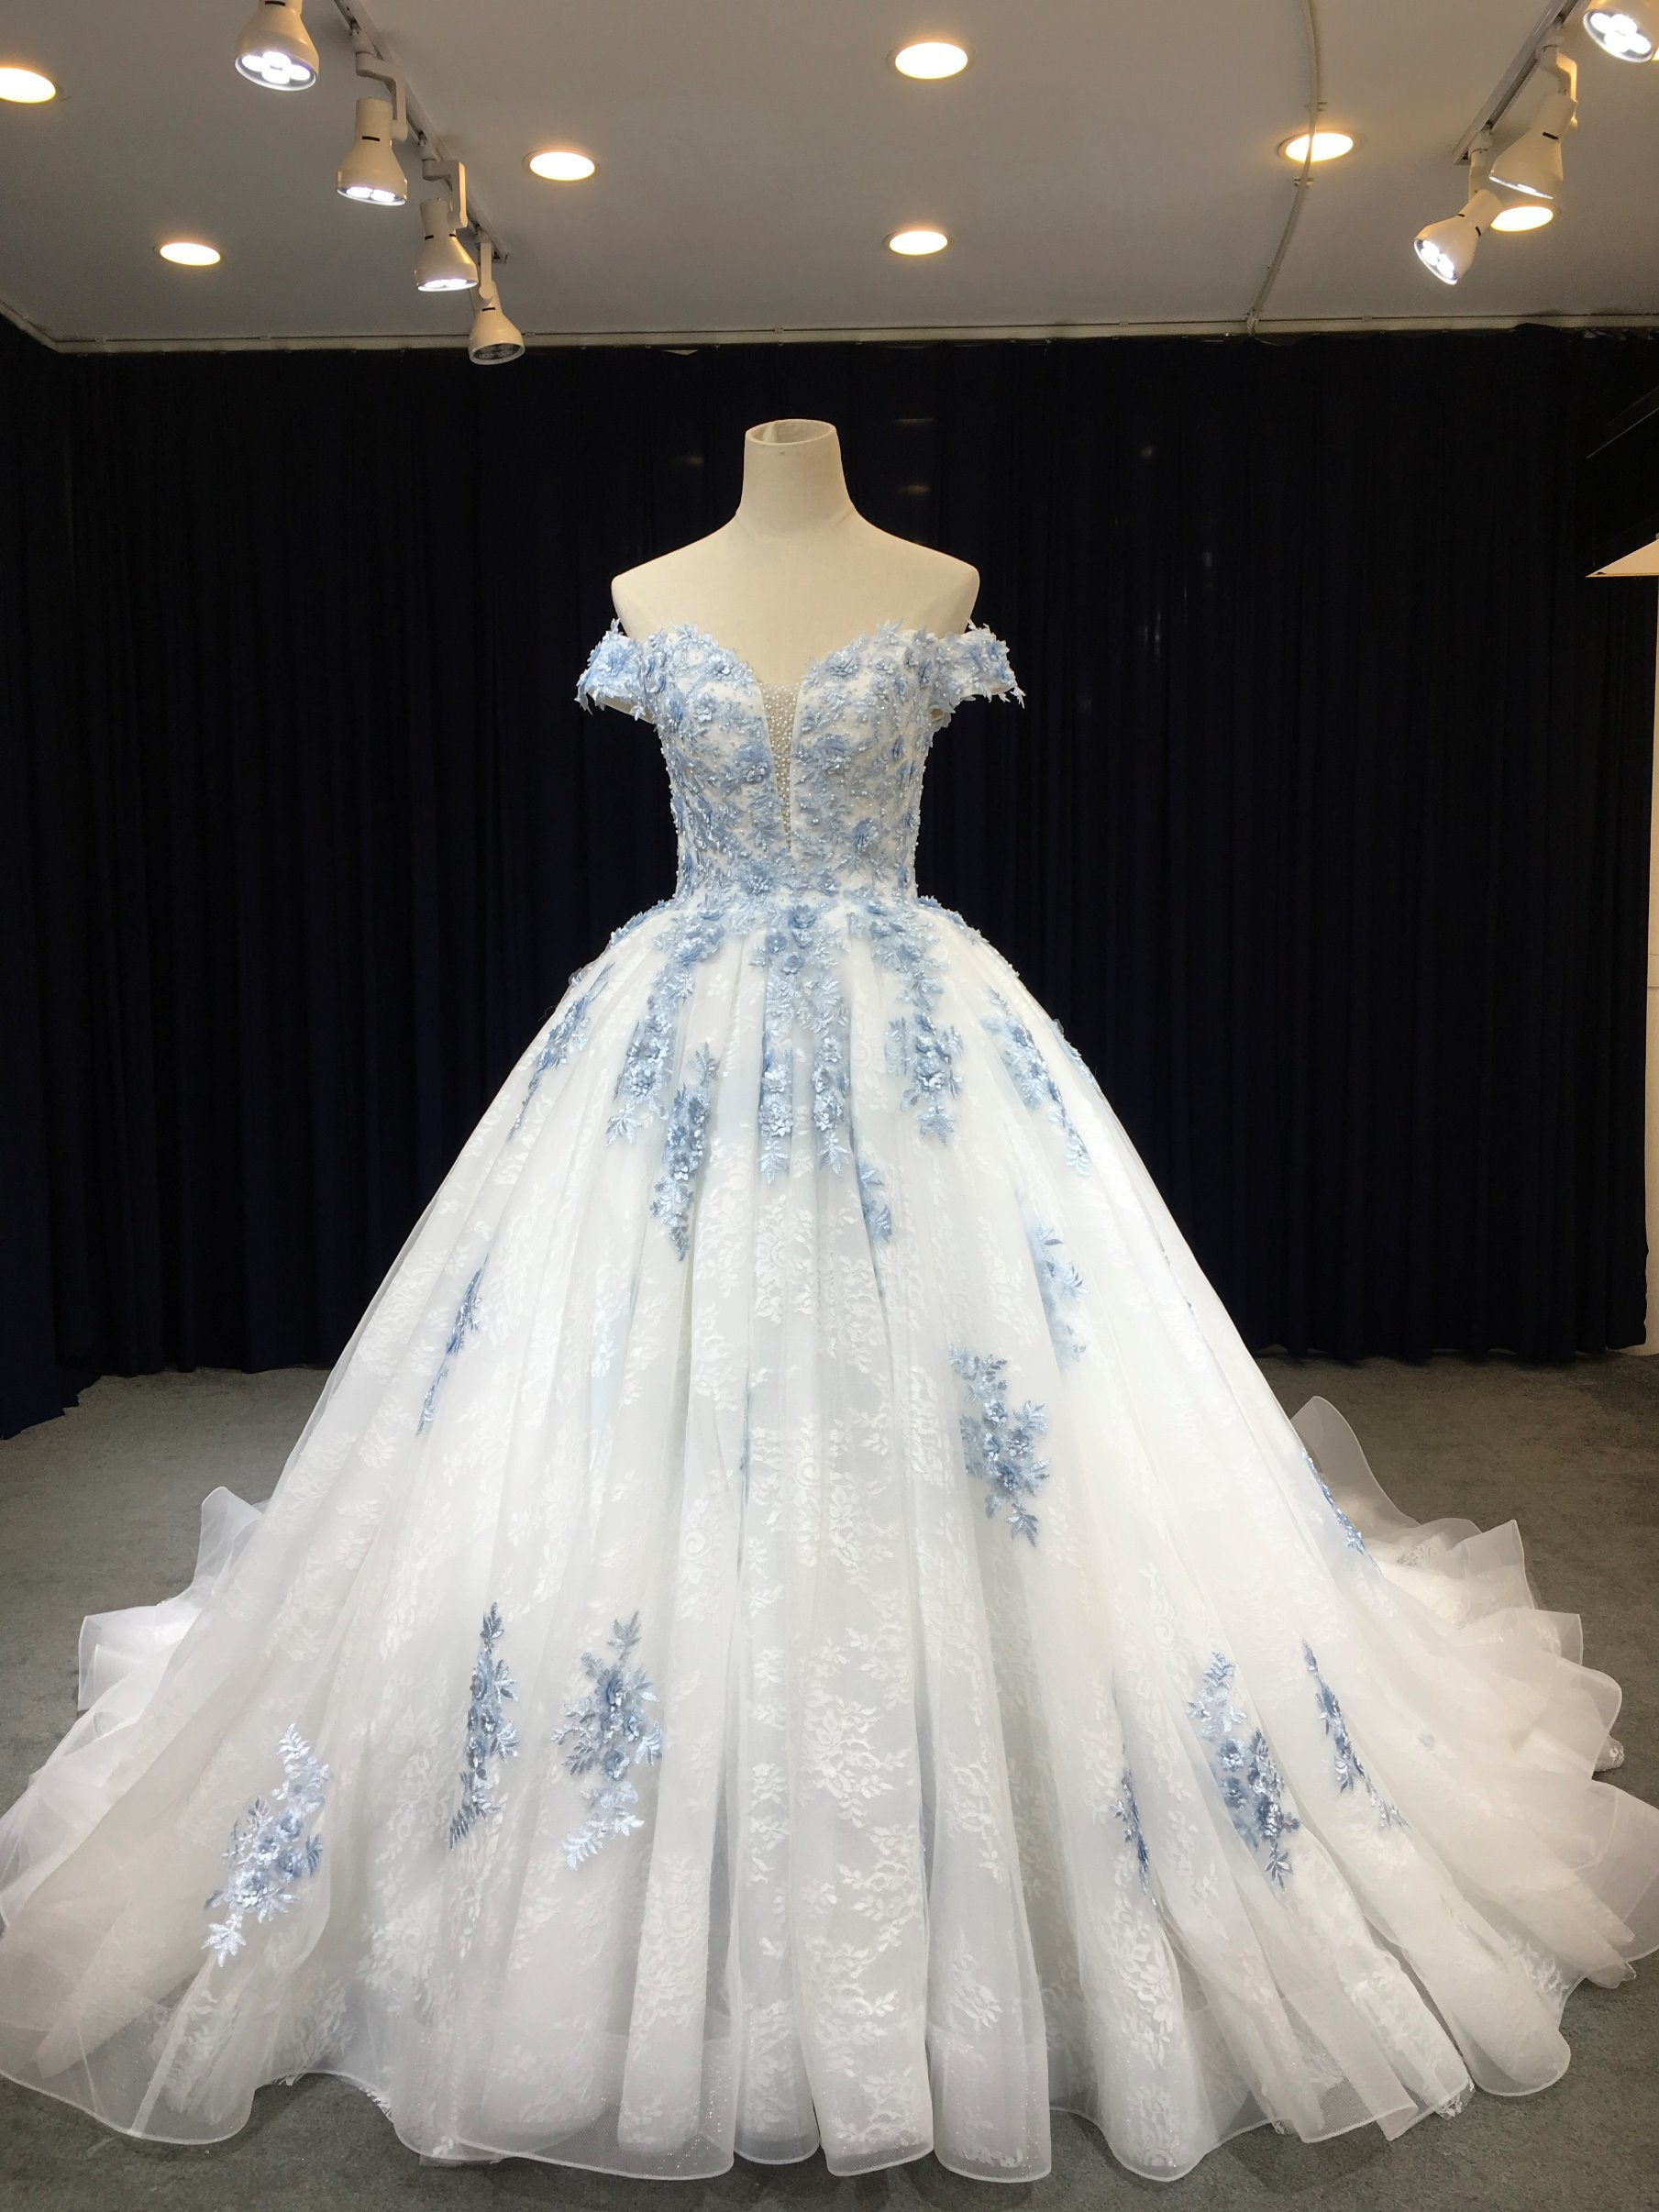 China Bride To Be Princess Dream Wedding Dress Party Gown